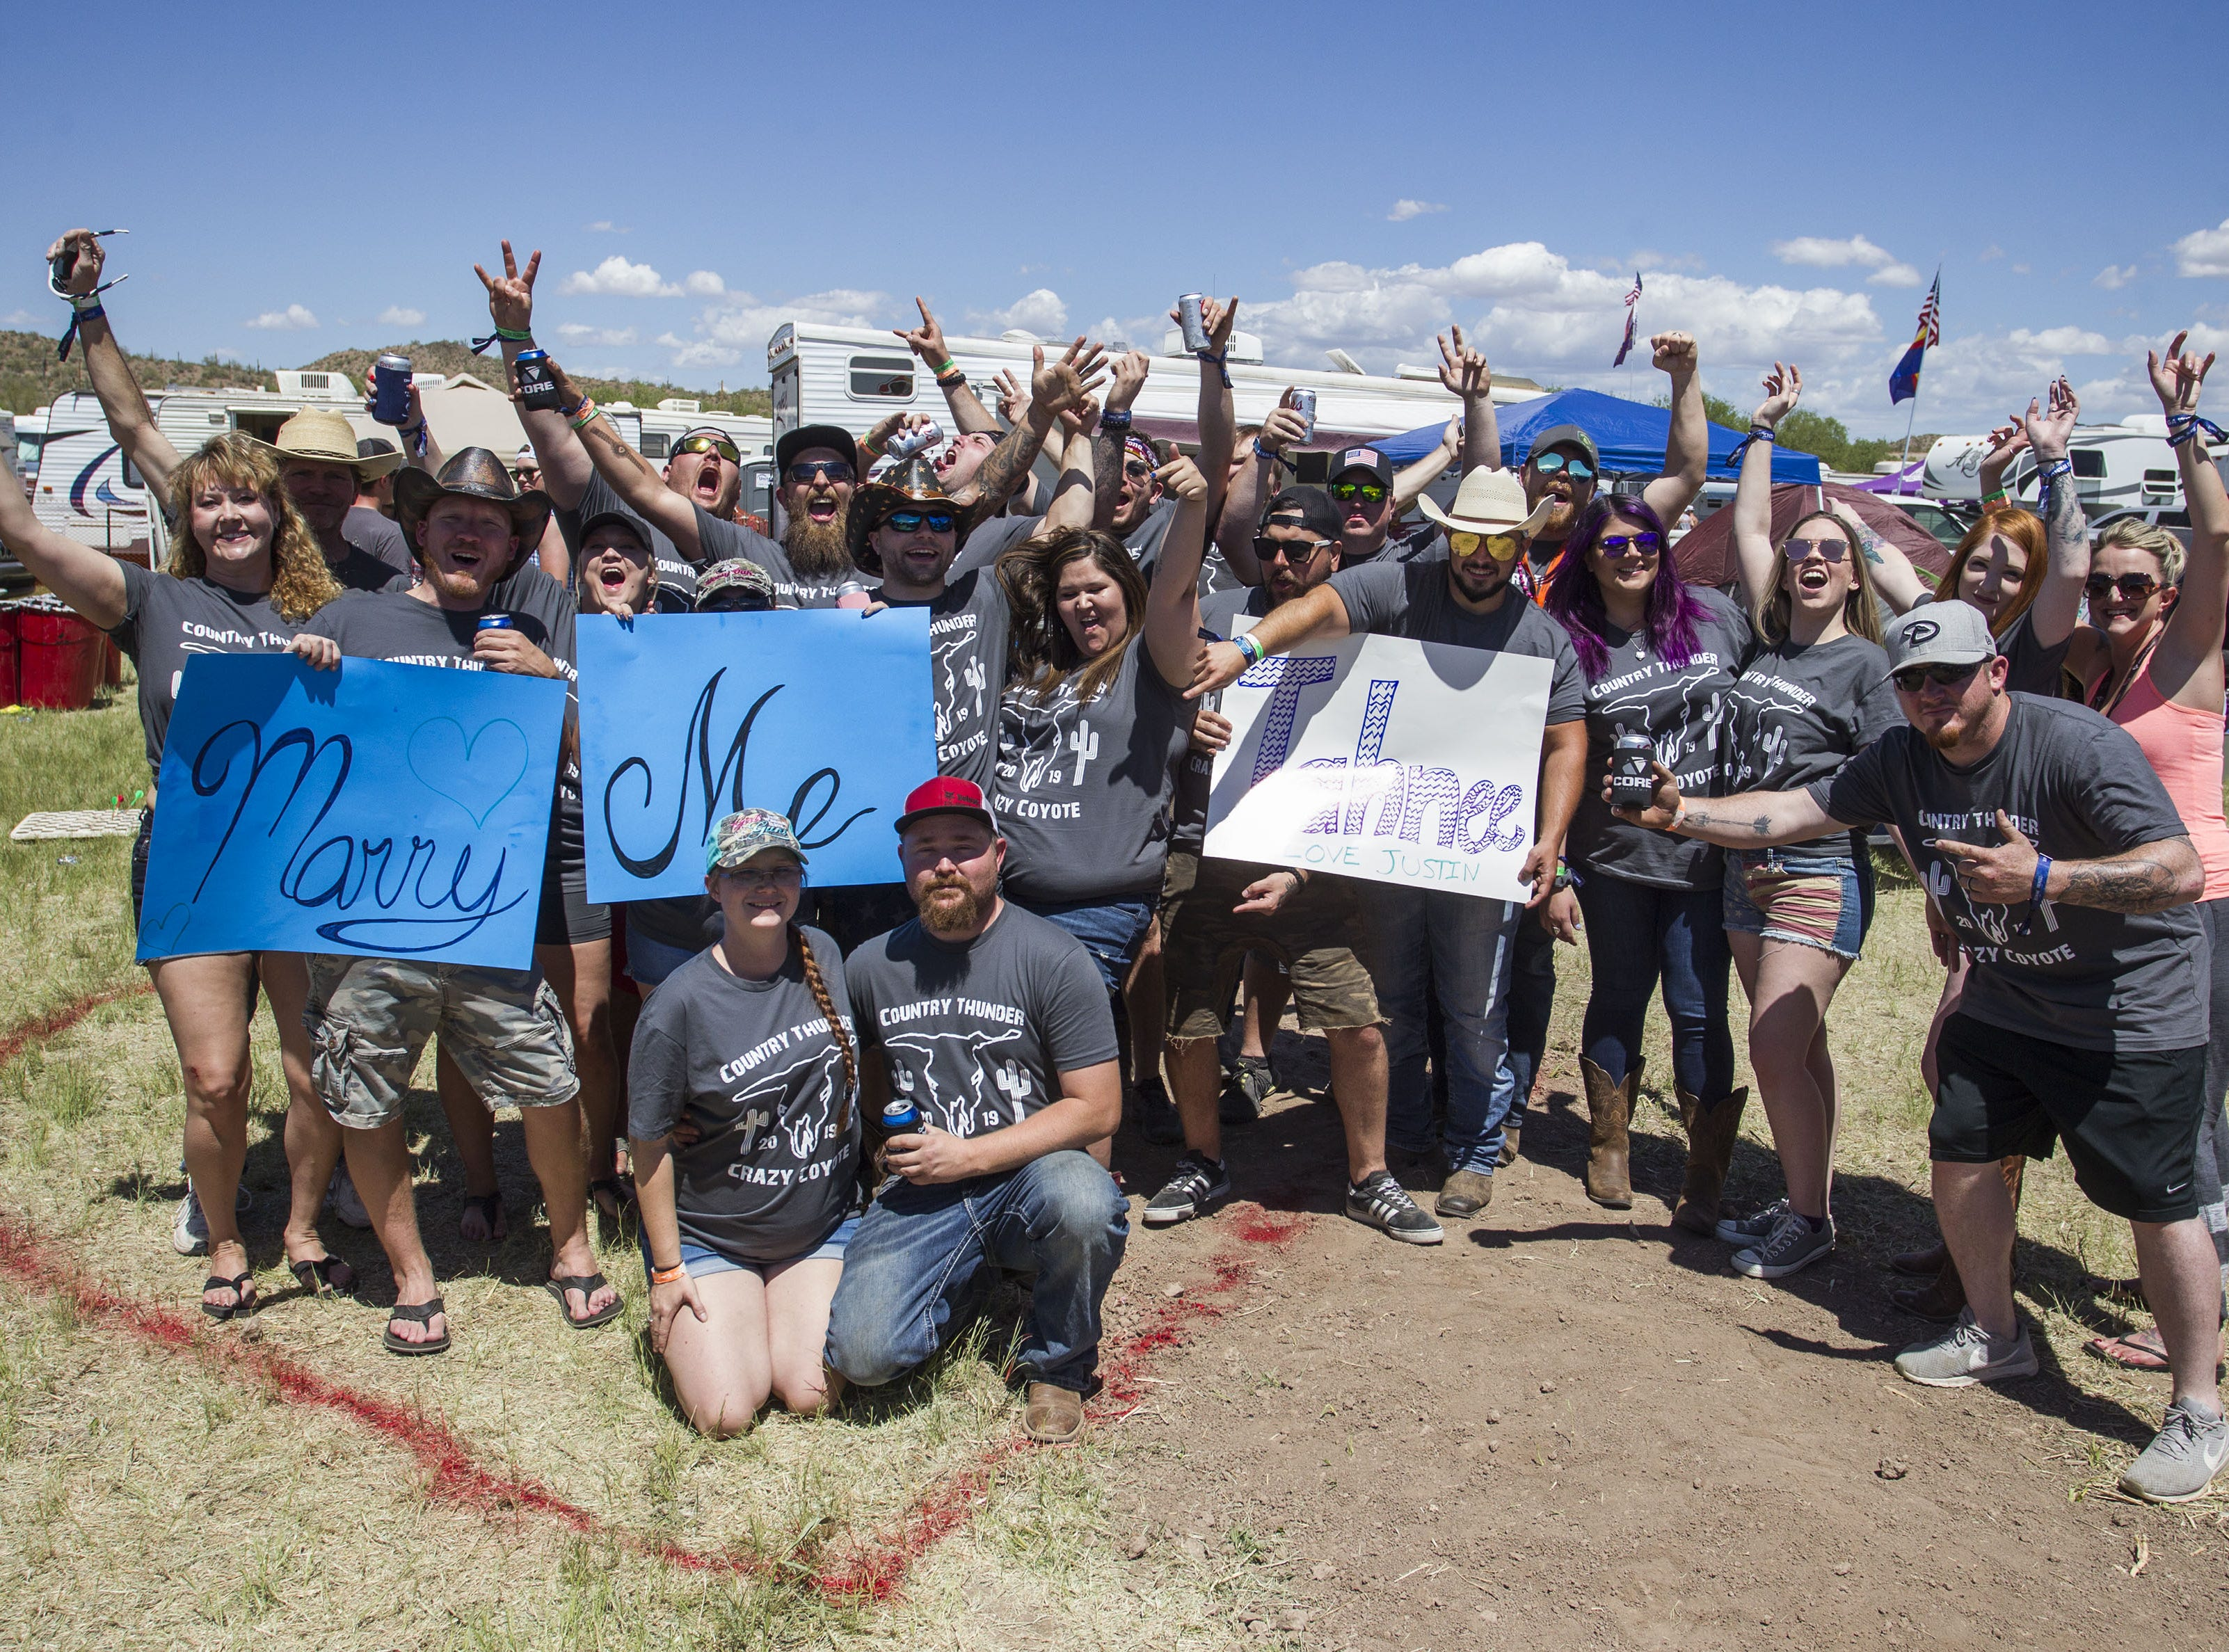 Friends of the Crazy Coyote Camp celebrate the marriage proposal of Tahnee Billingsly and Justin Adams during Country Thunder Arizona Saturday, April 13, 2019, in Florence, Arizona.